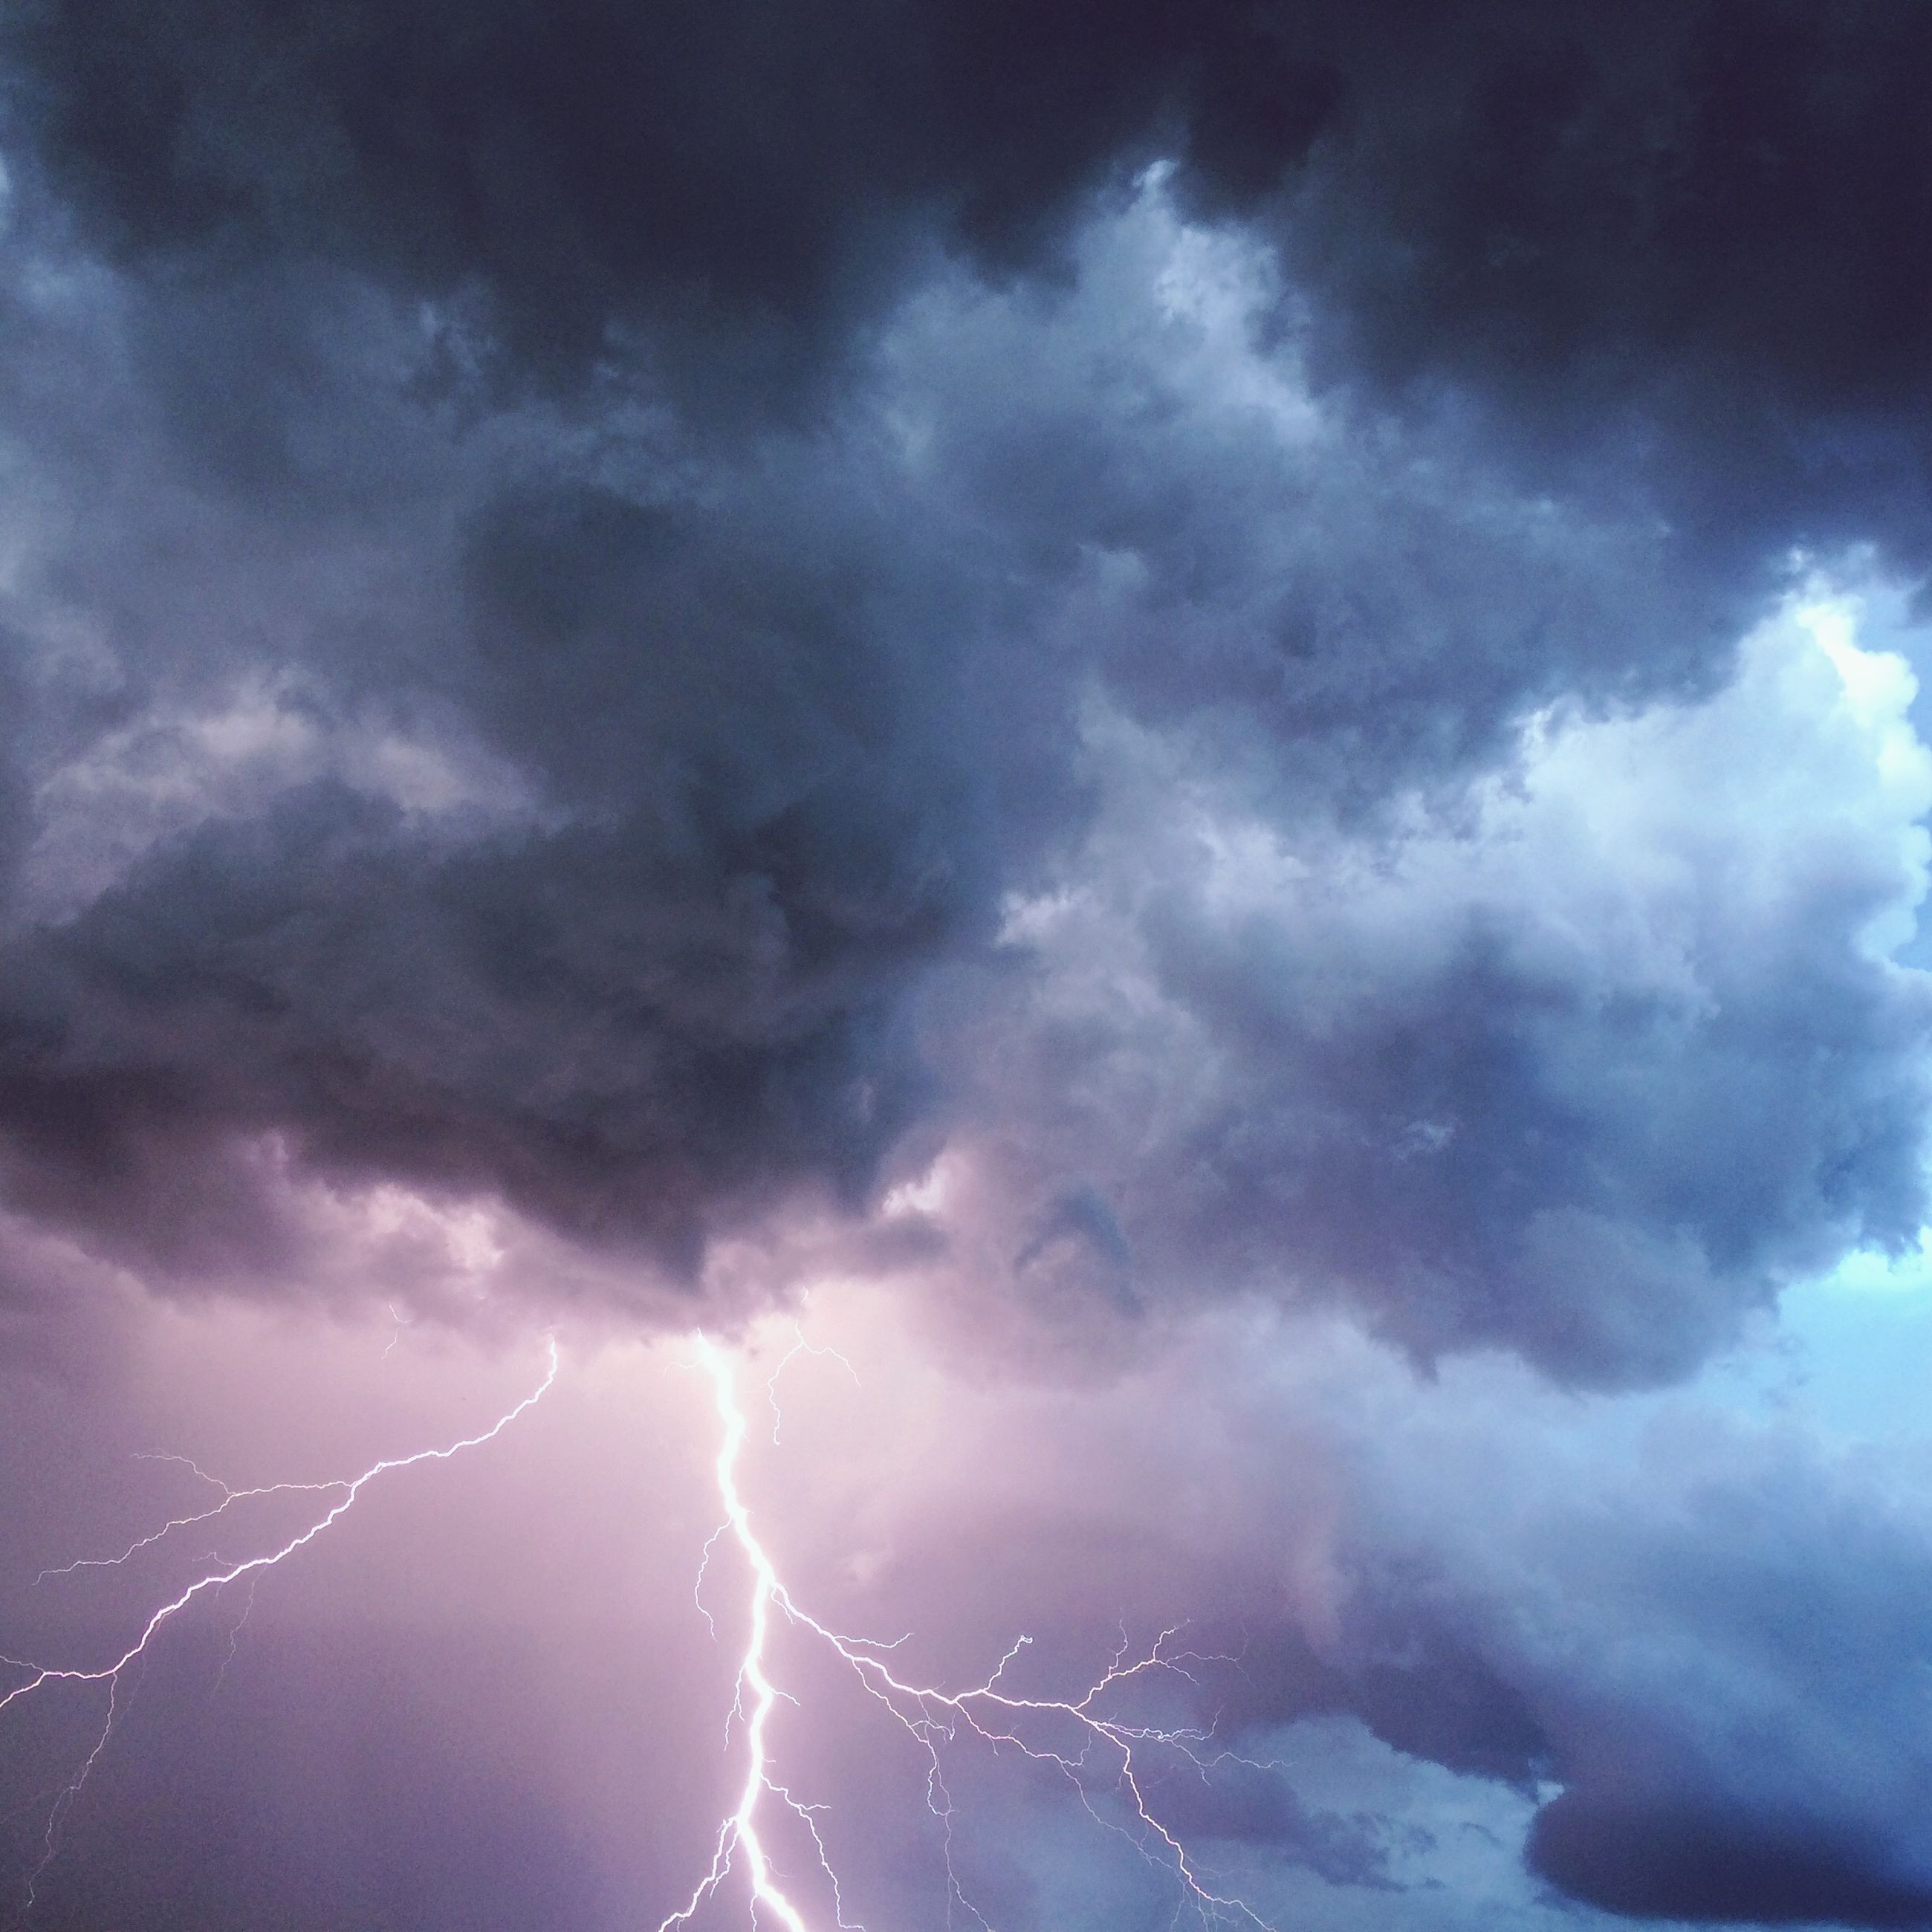 cloud - sky, sky, cloudy, weather, low angle view, storm cloud, overcast, beauty in nature, nature, cloudscape, cloud, scenics, tranquility, dramatic sky, atmospheric mood, power in nature, outdoors, dusk, no people, storm